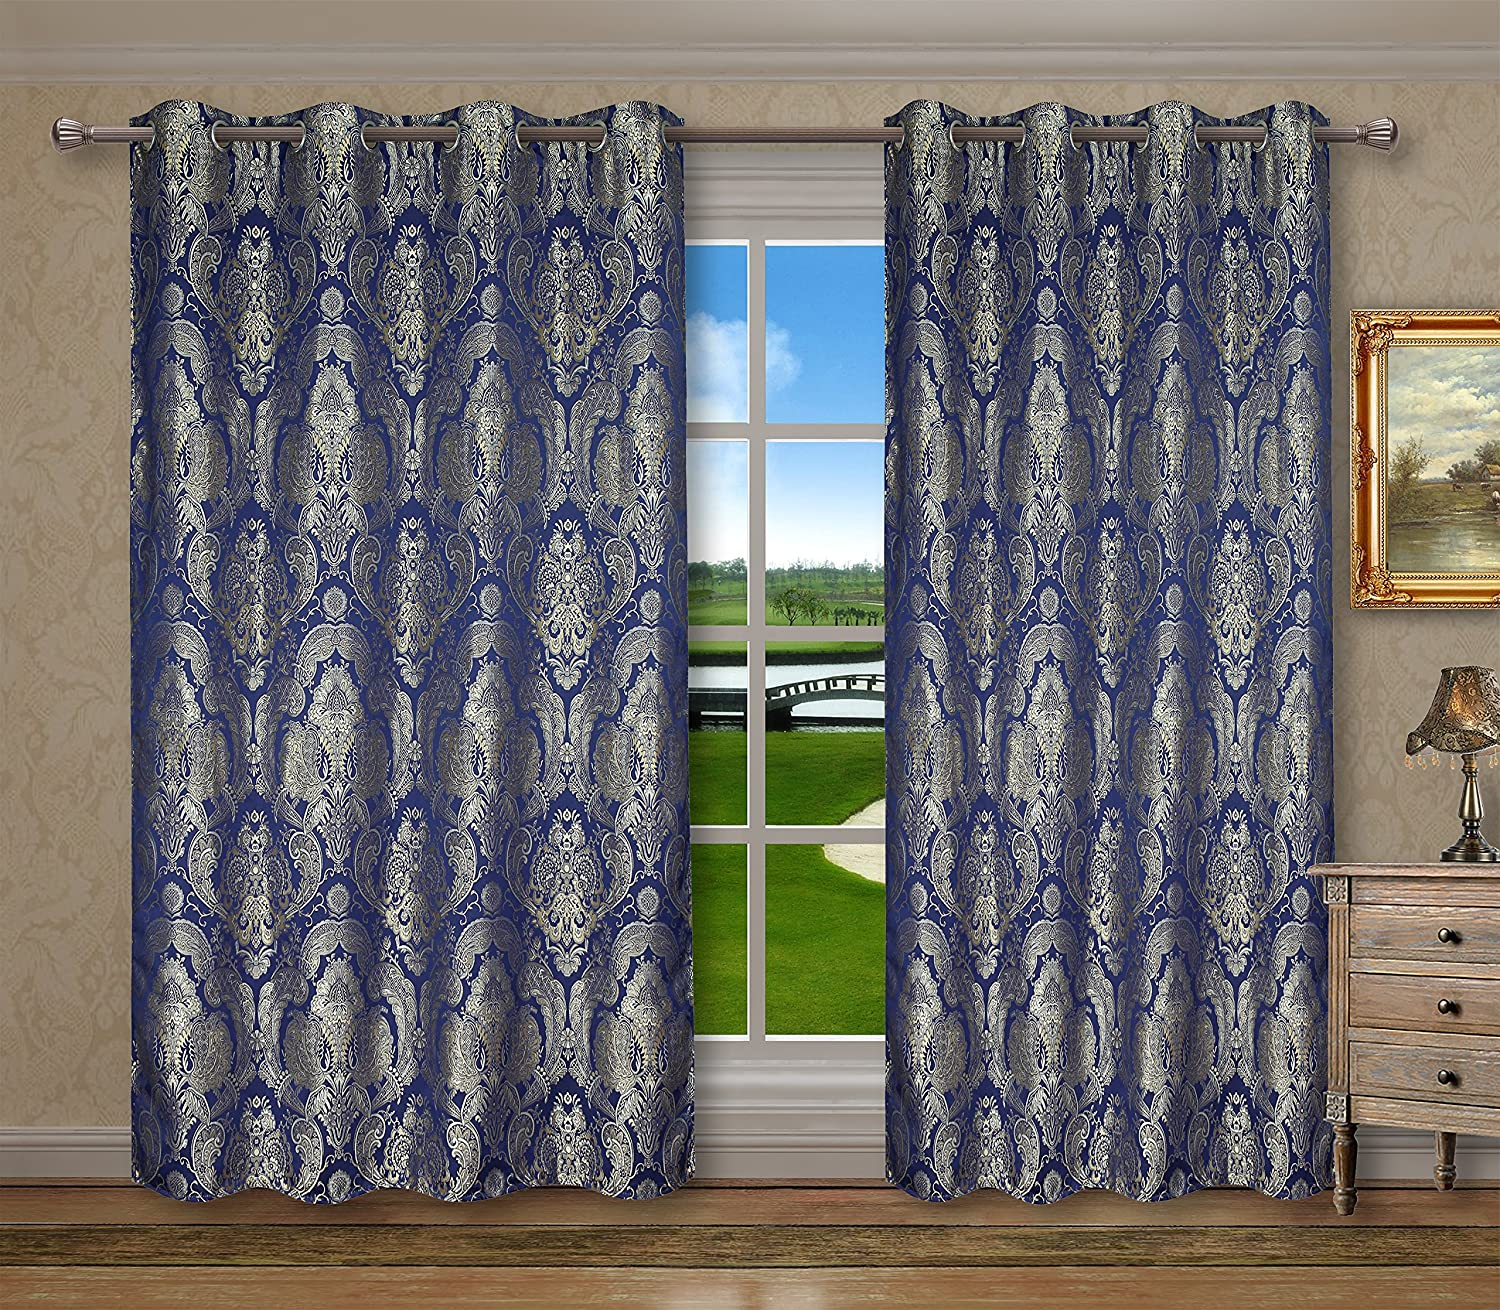 CaliTime Supersoft Grommets Window Curtains Panels for Bedroom